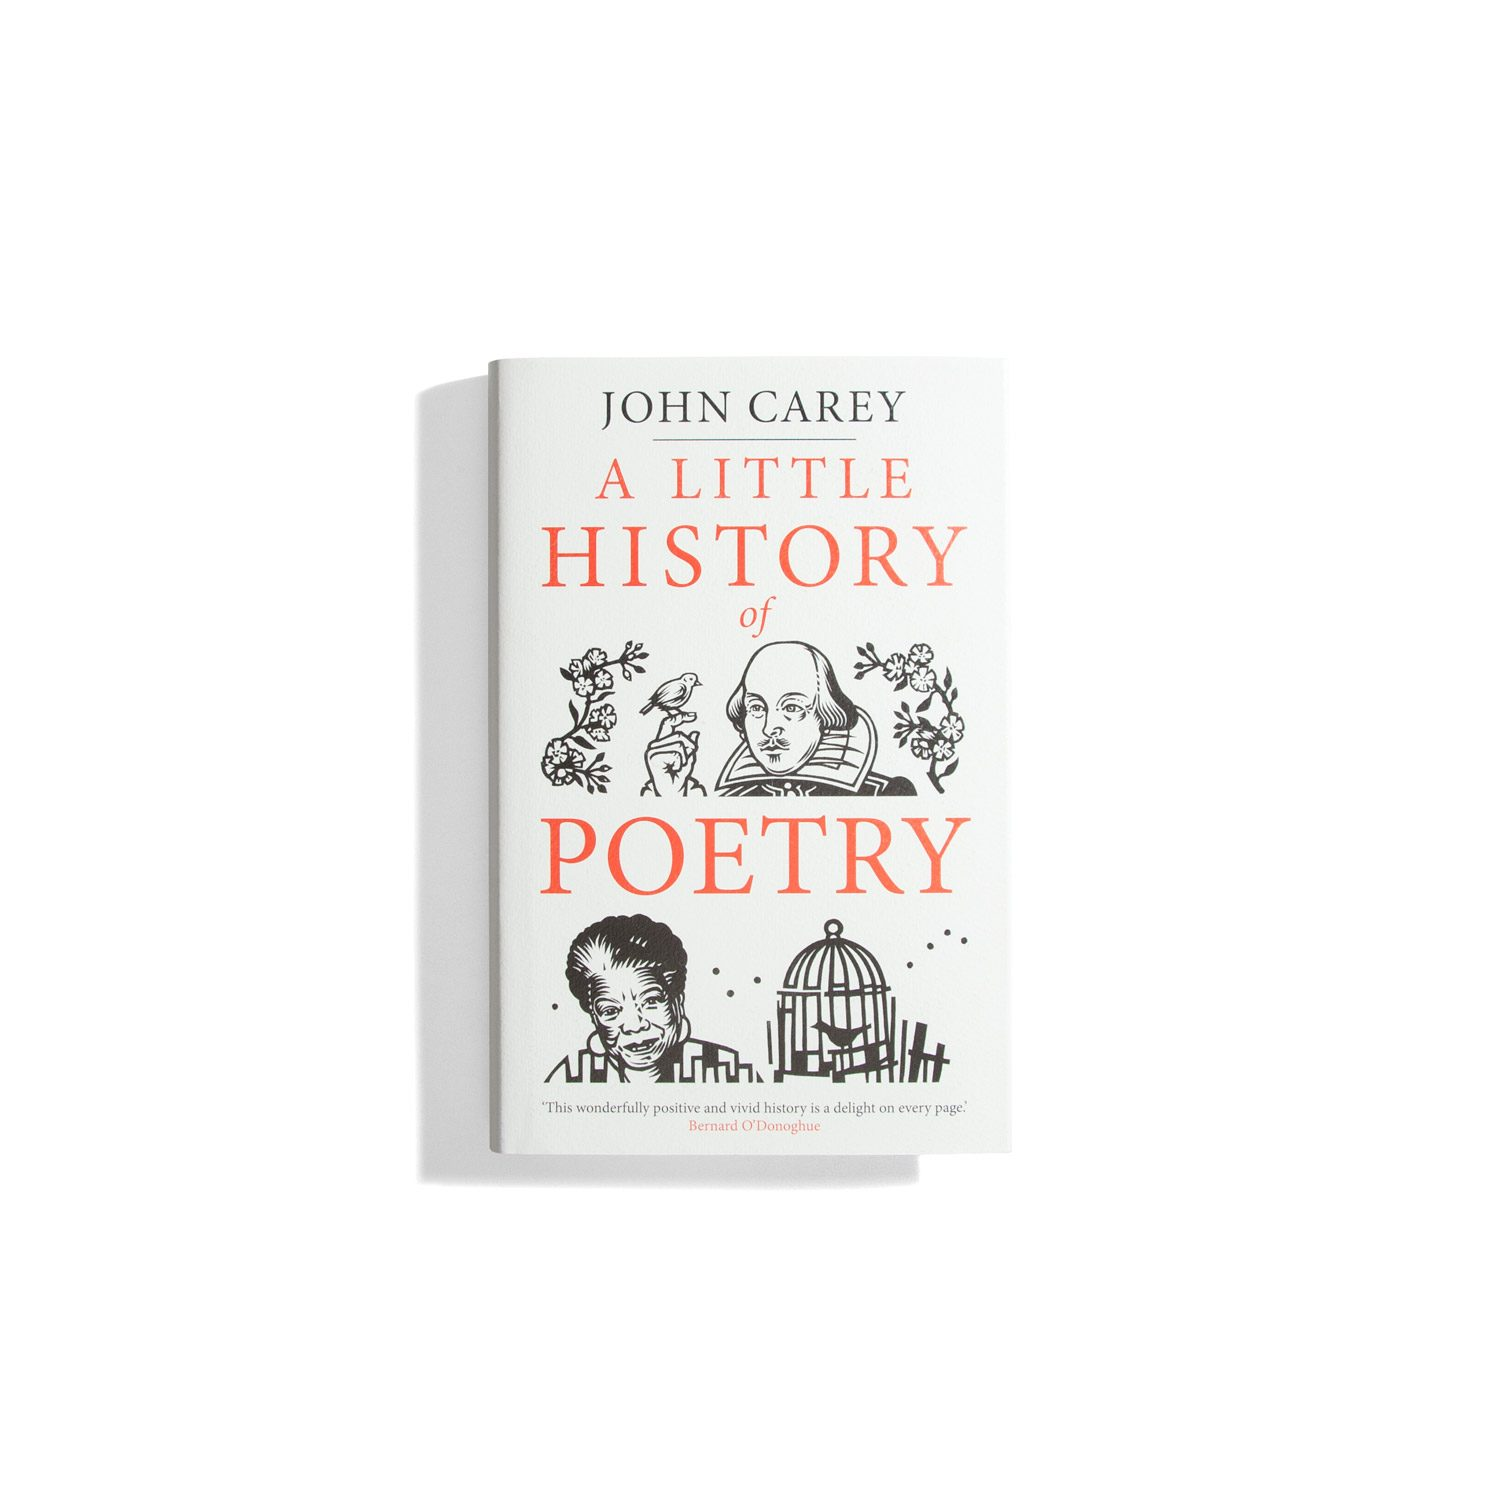 A Little History of Poetry - John Carey